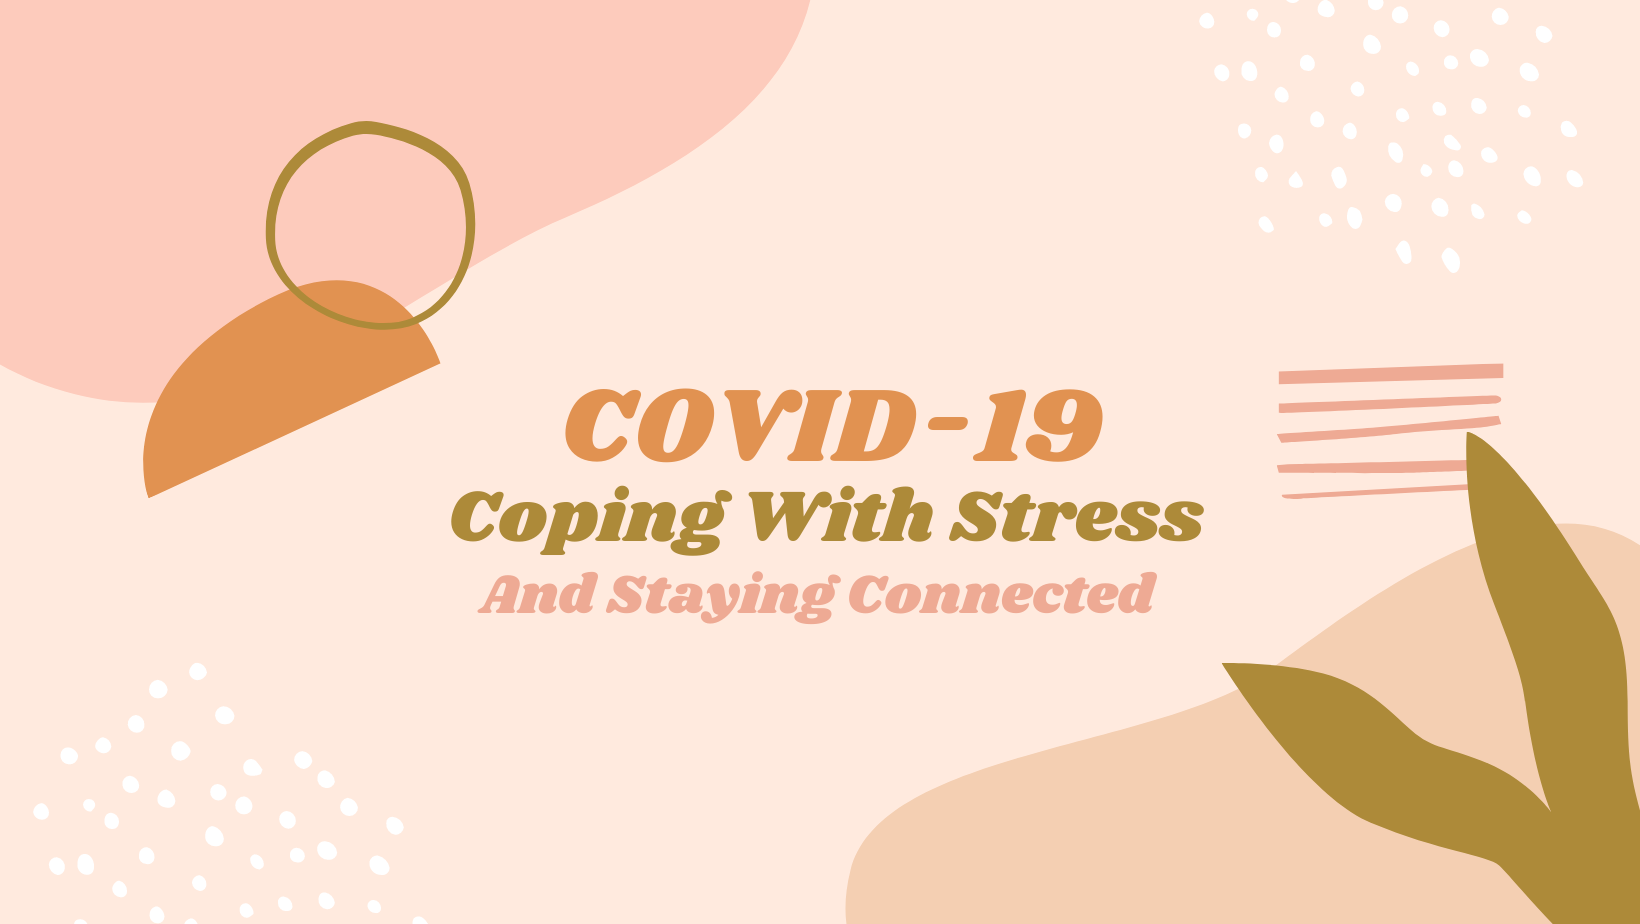 Coping with Stress and Staying Connected